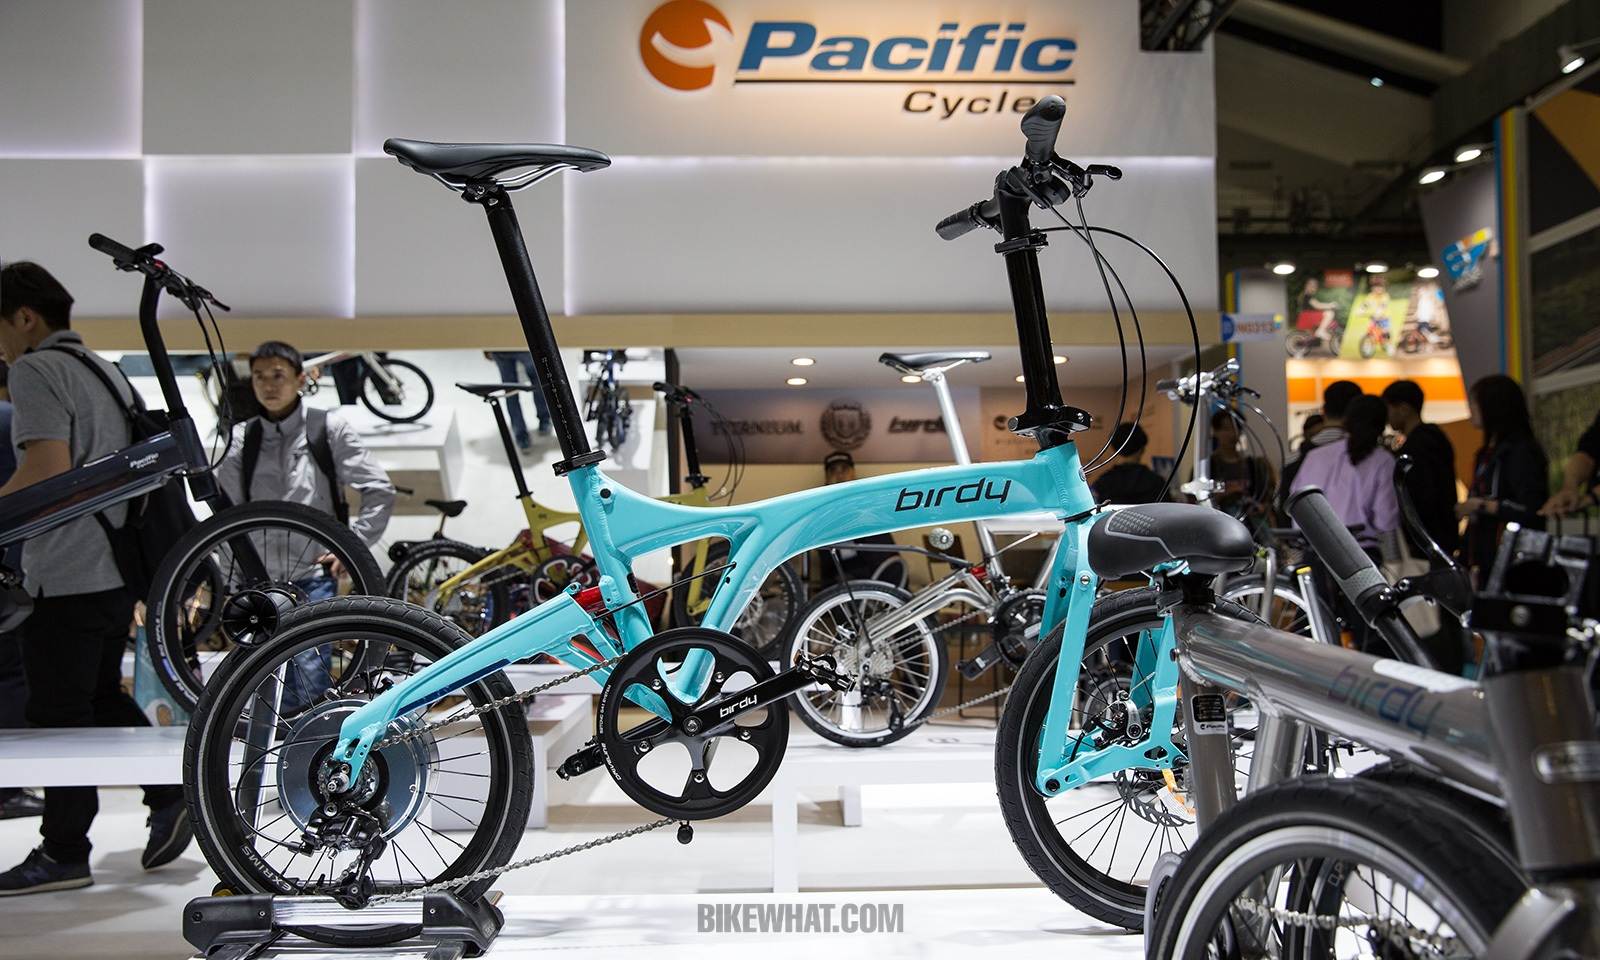 news_taipeicycle_2019_3.jpg